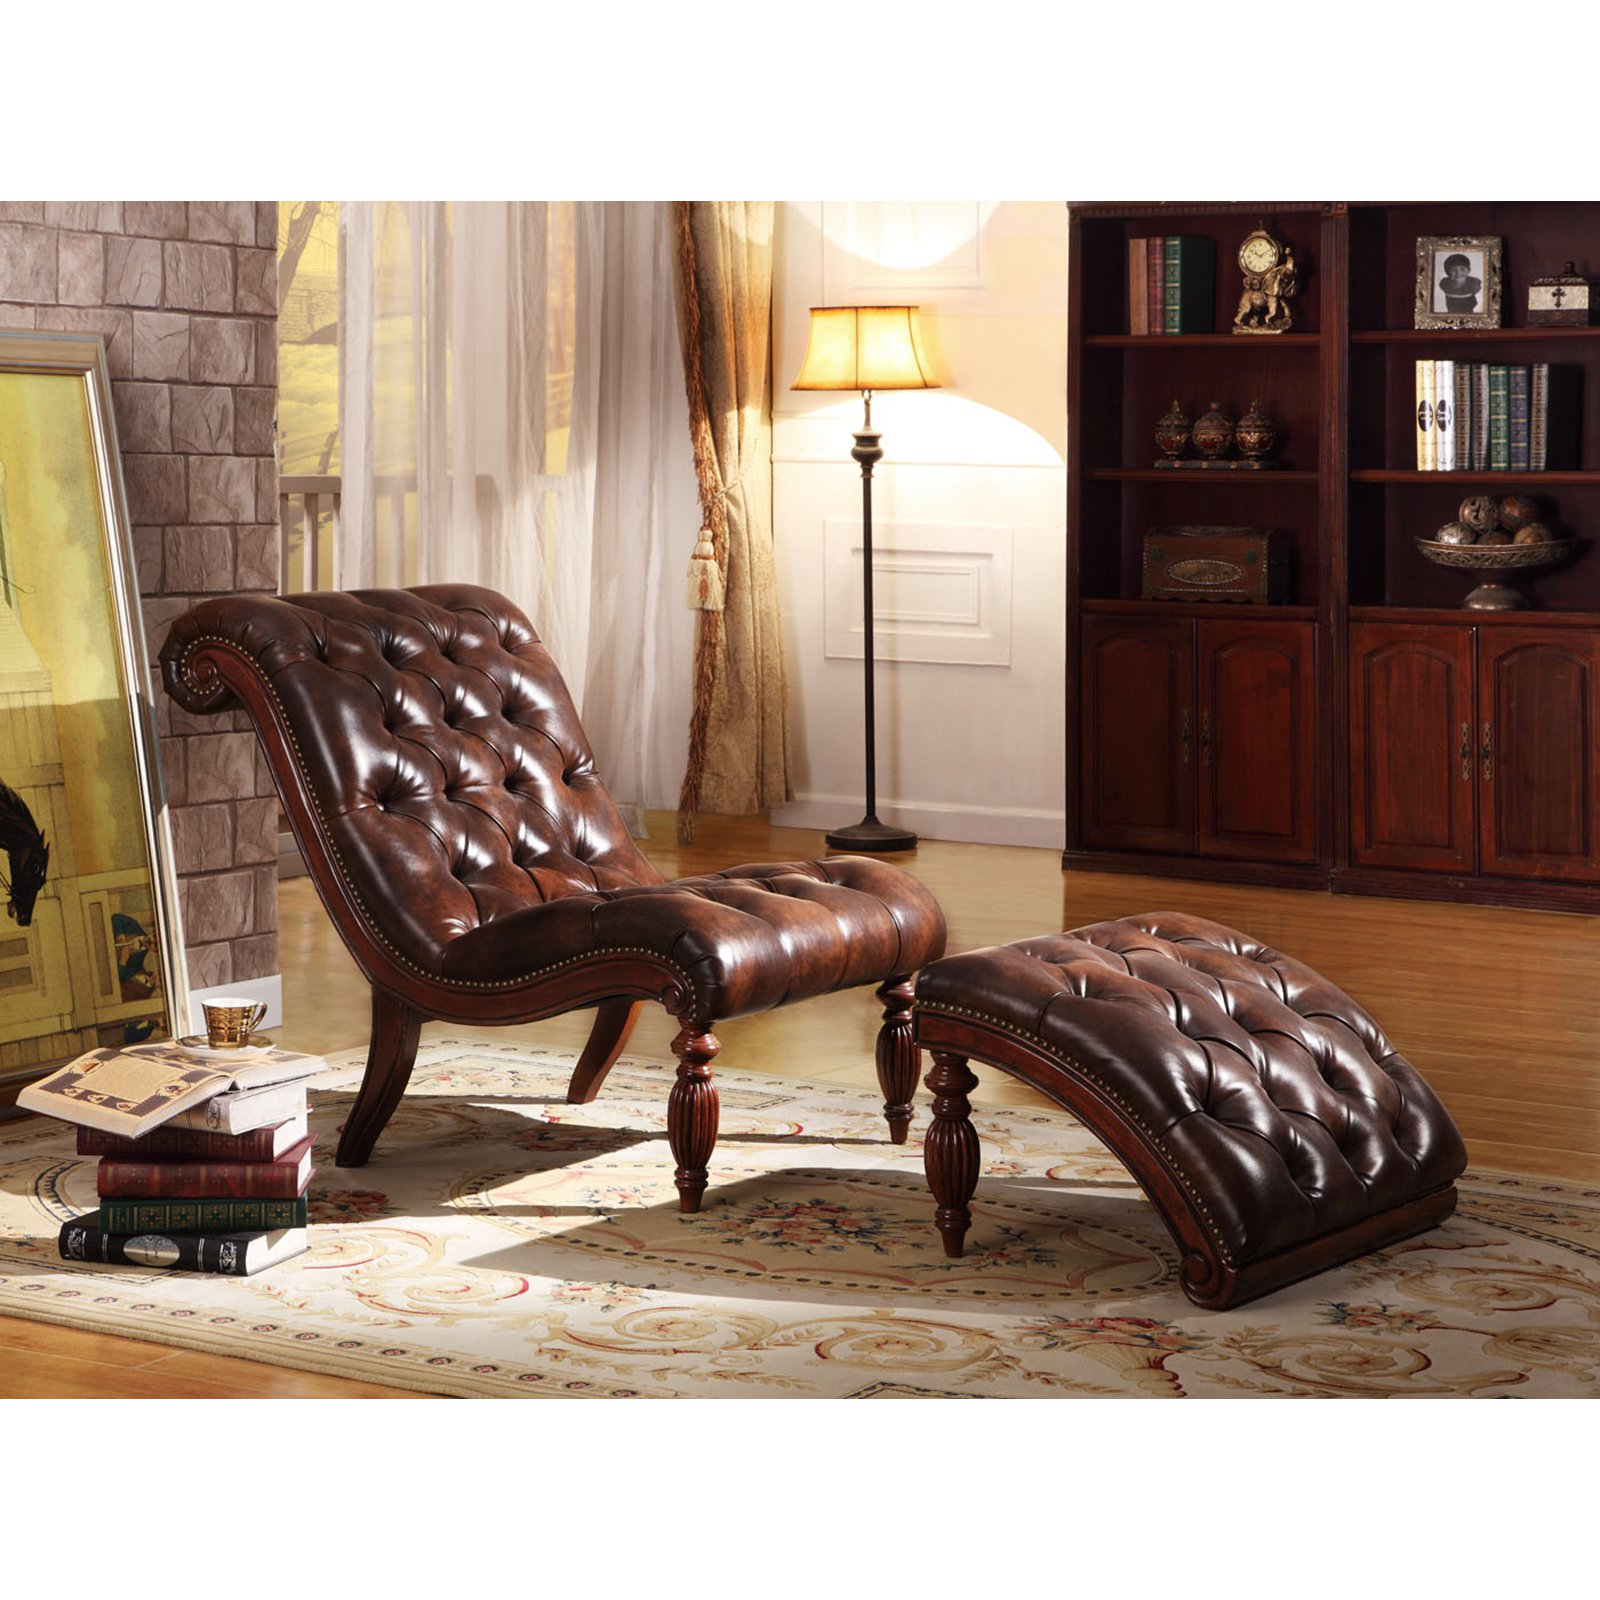 Weston Home Faux-Leather Button Tufted Chaise and Ottoman, Brown